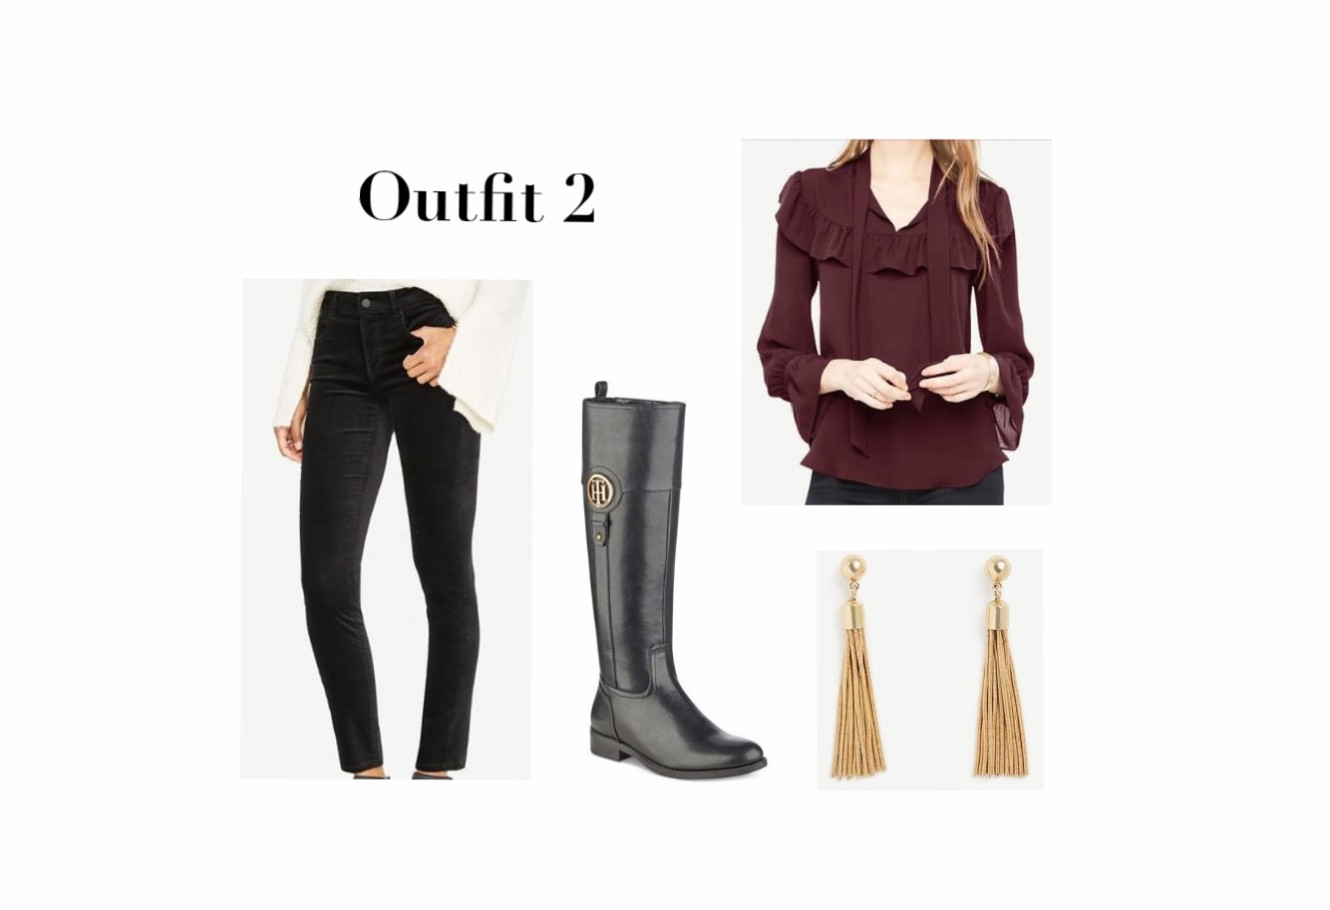 Burgundy Top. Pants, Tall Boots, And Earrings